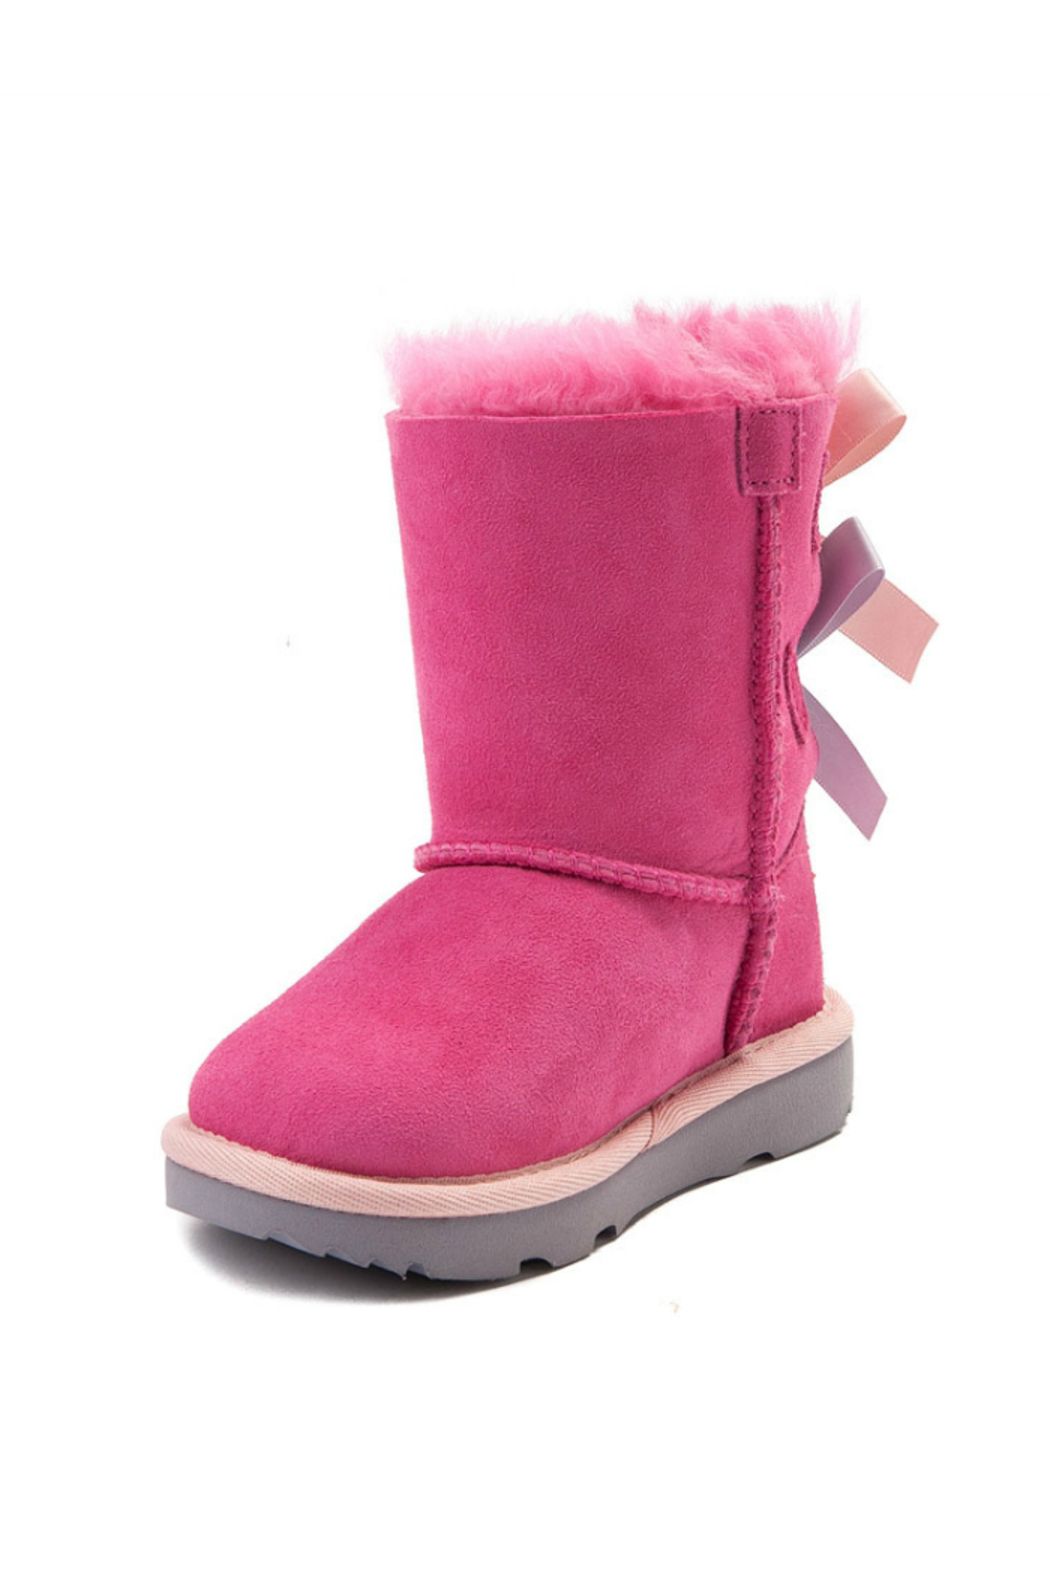 Ugg TODDLER BAILEY BOW - Front Cropped Image